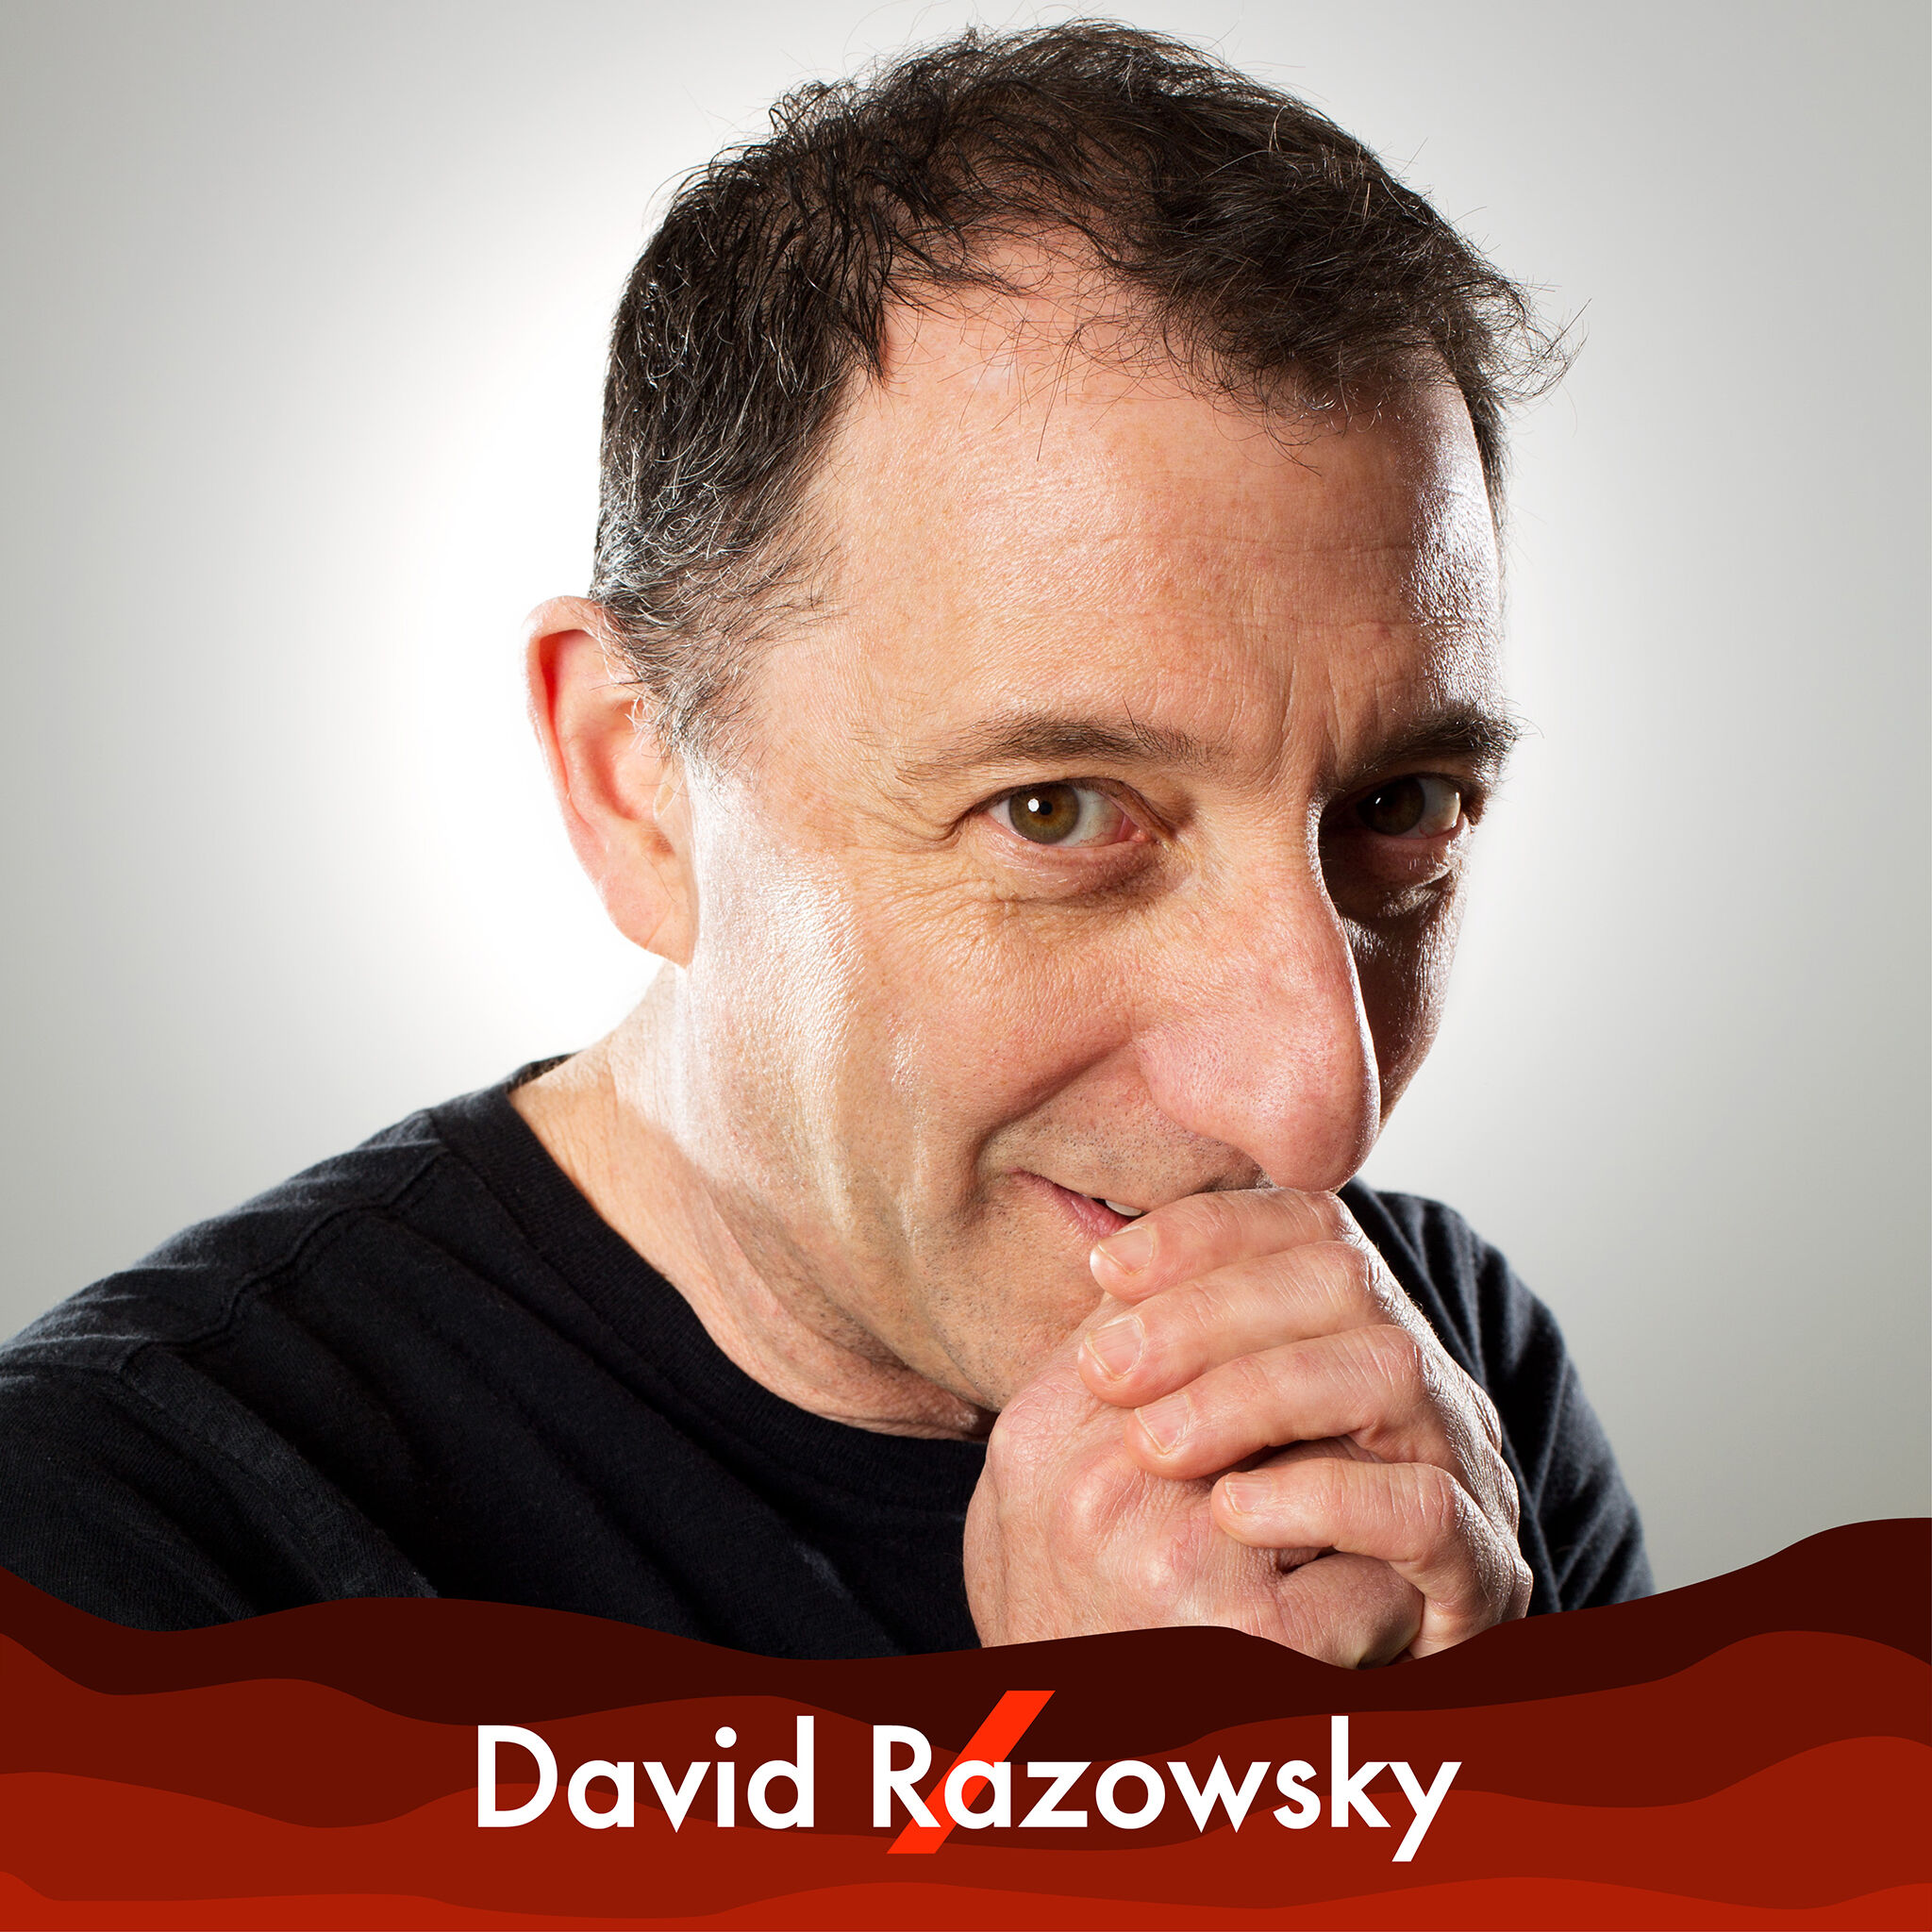 A picture of David Razowsky